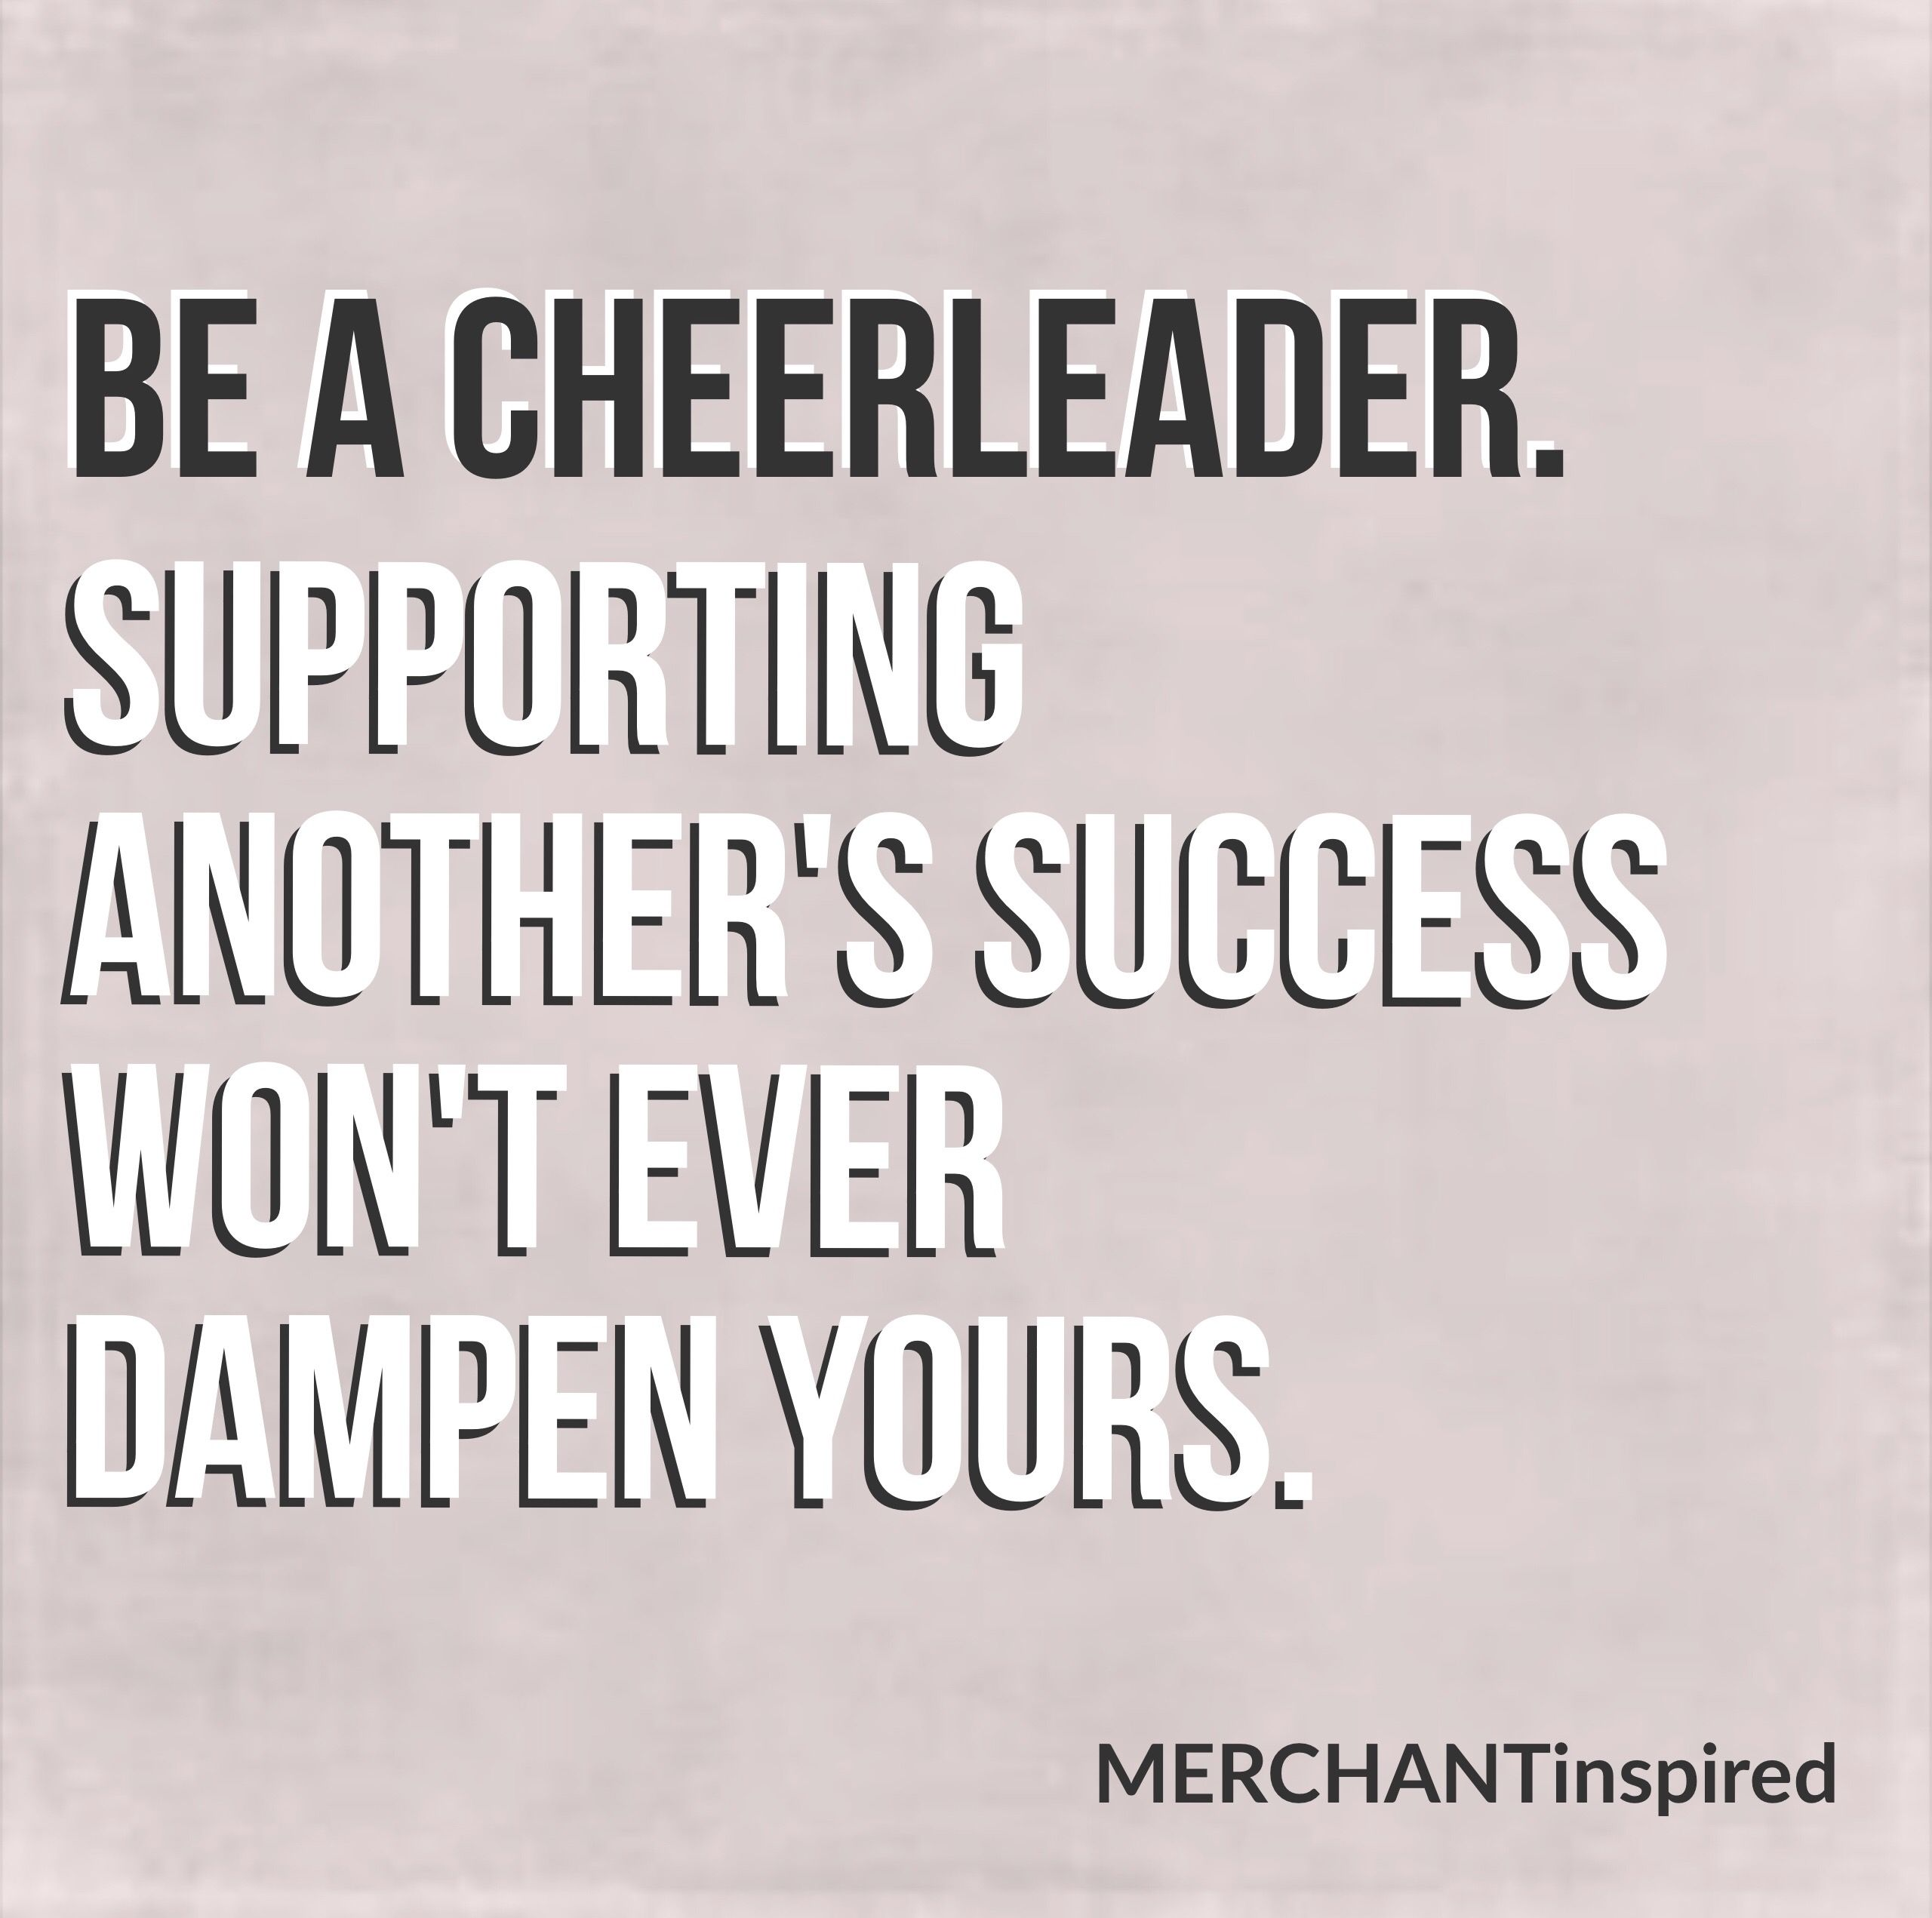 Supporting Quotes Be A Cheerleadersupporting Another's Success Won't Ever Dampen